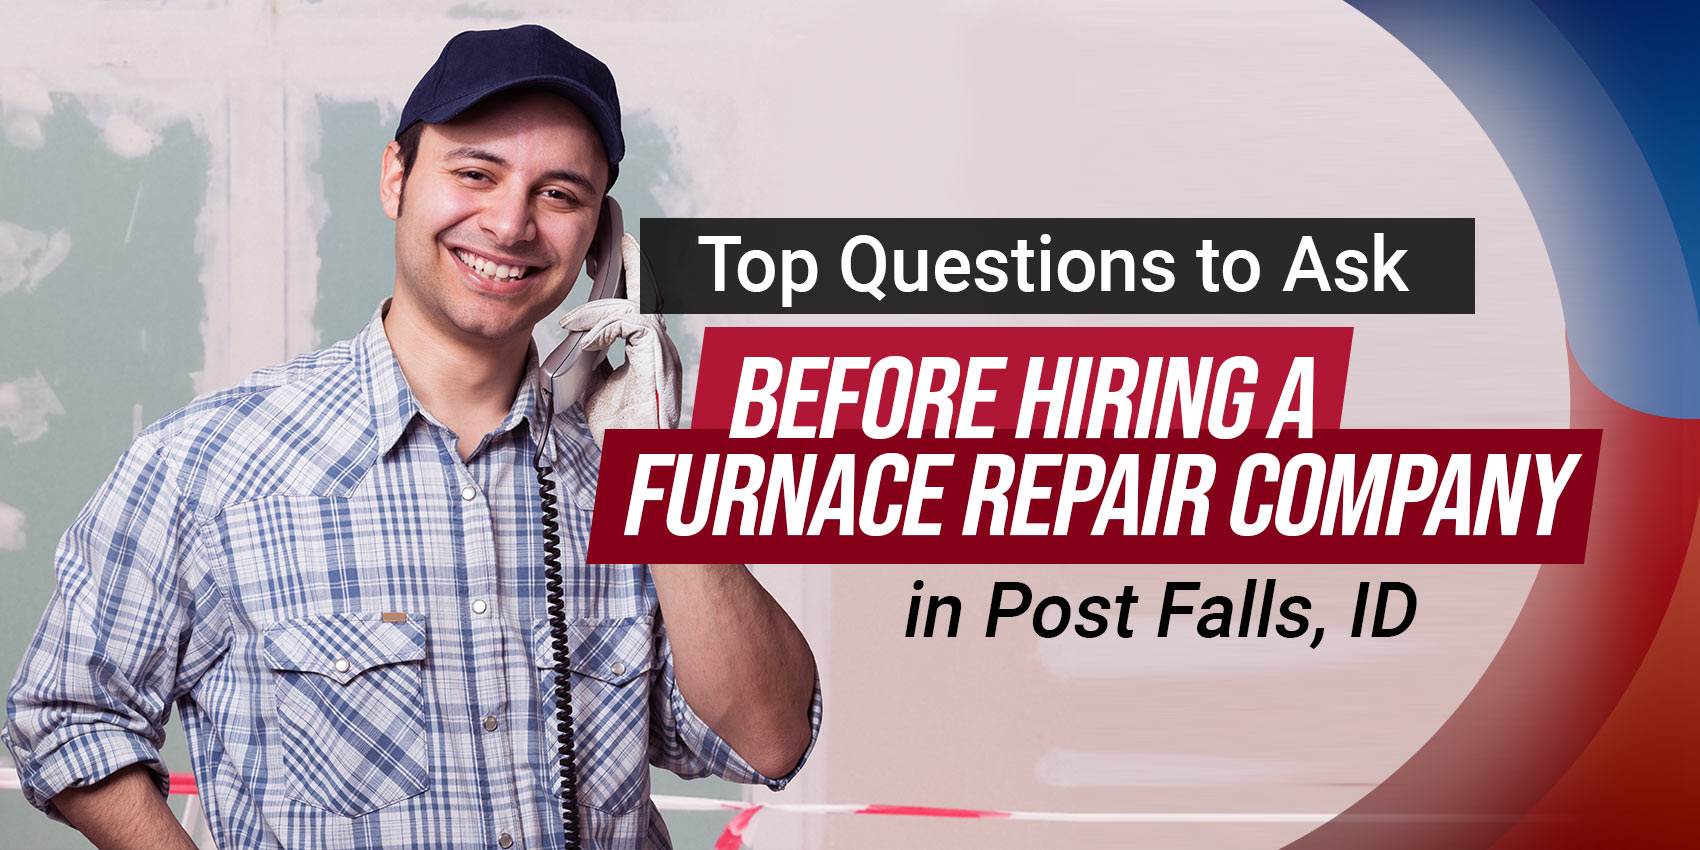 Top Questions to Ask Before Hiring a Furnace Repair Company